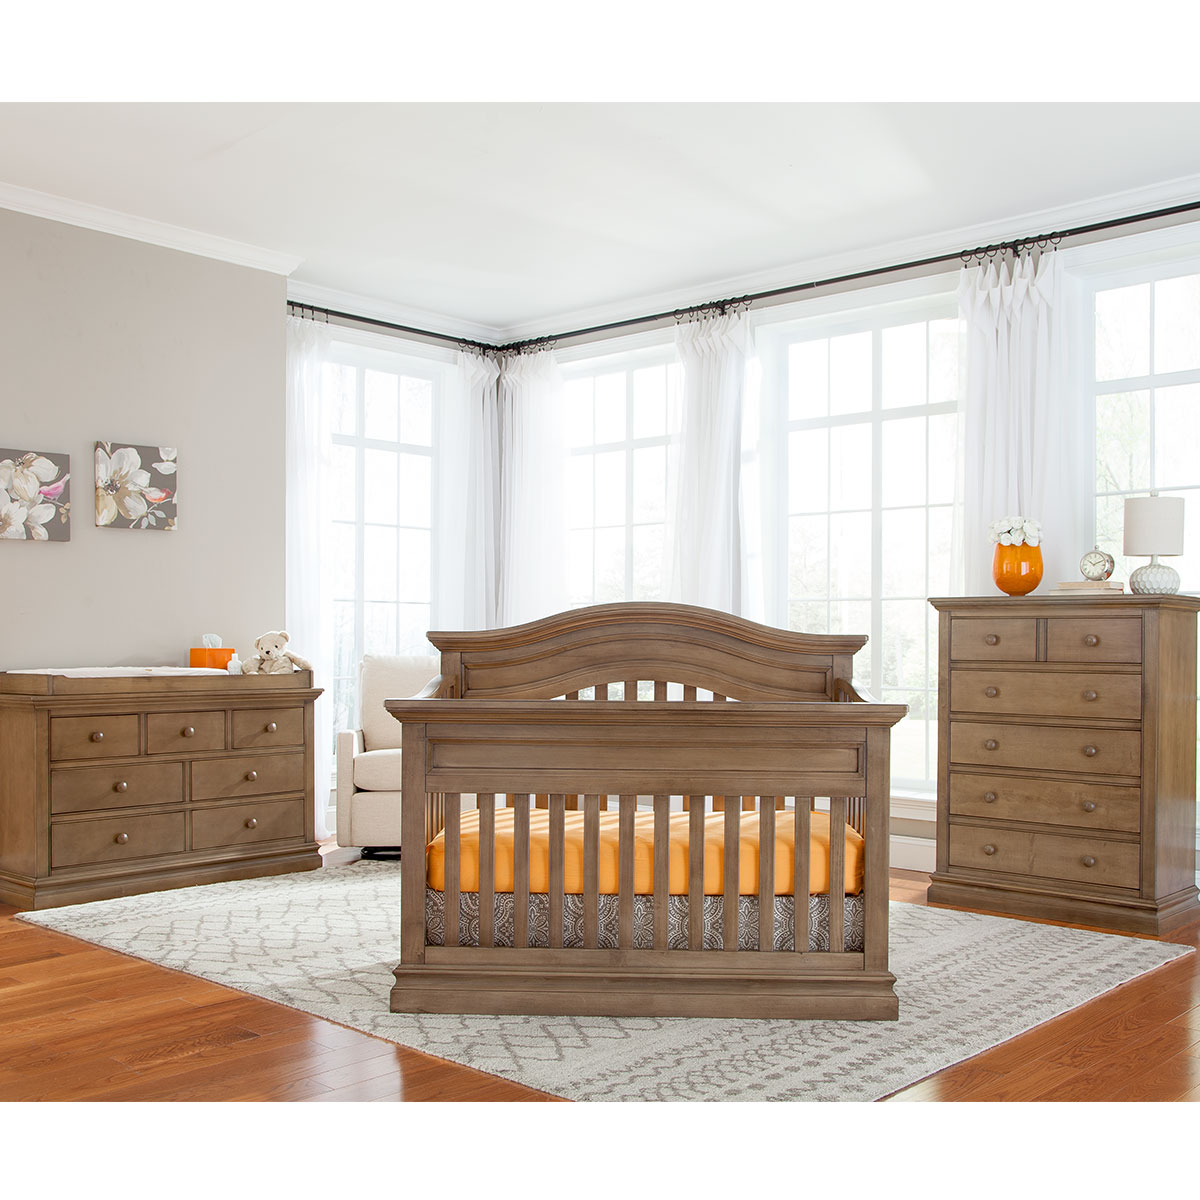 cribs double crib piece set collection products nursery dresser and riley nursey westwood